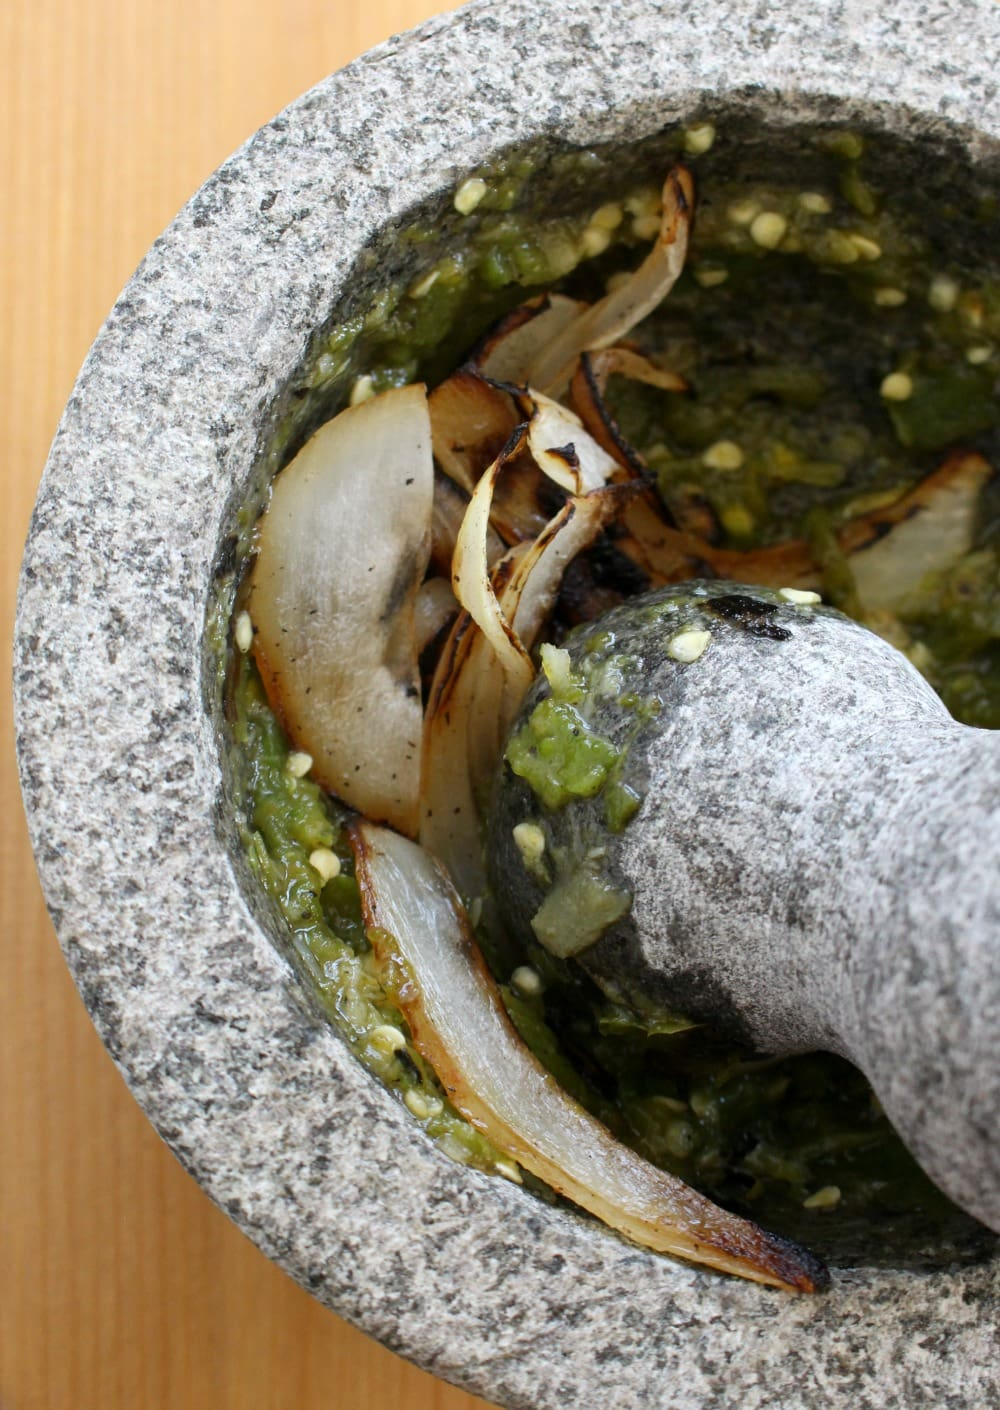 Roasted onions in a gray molcajete.